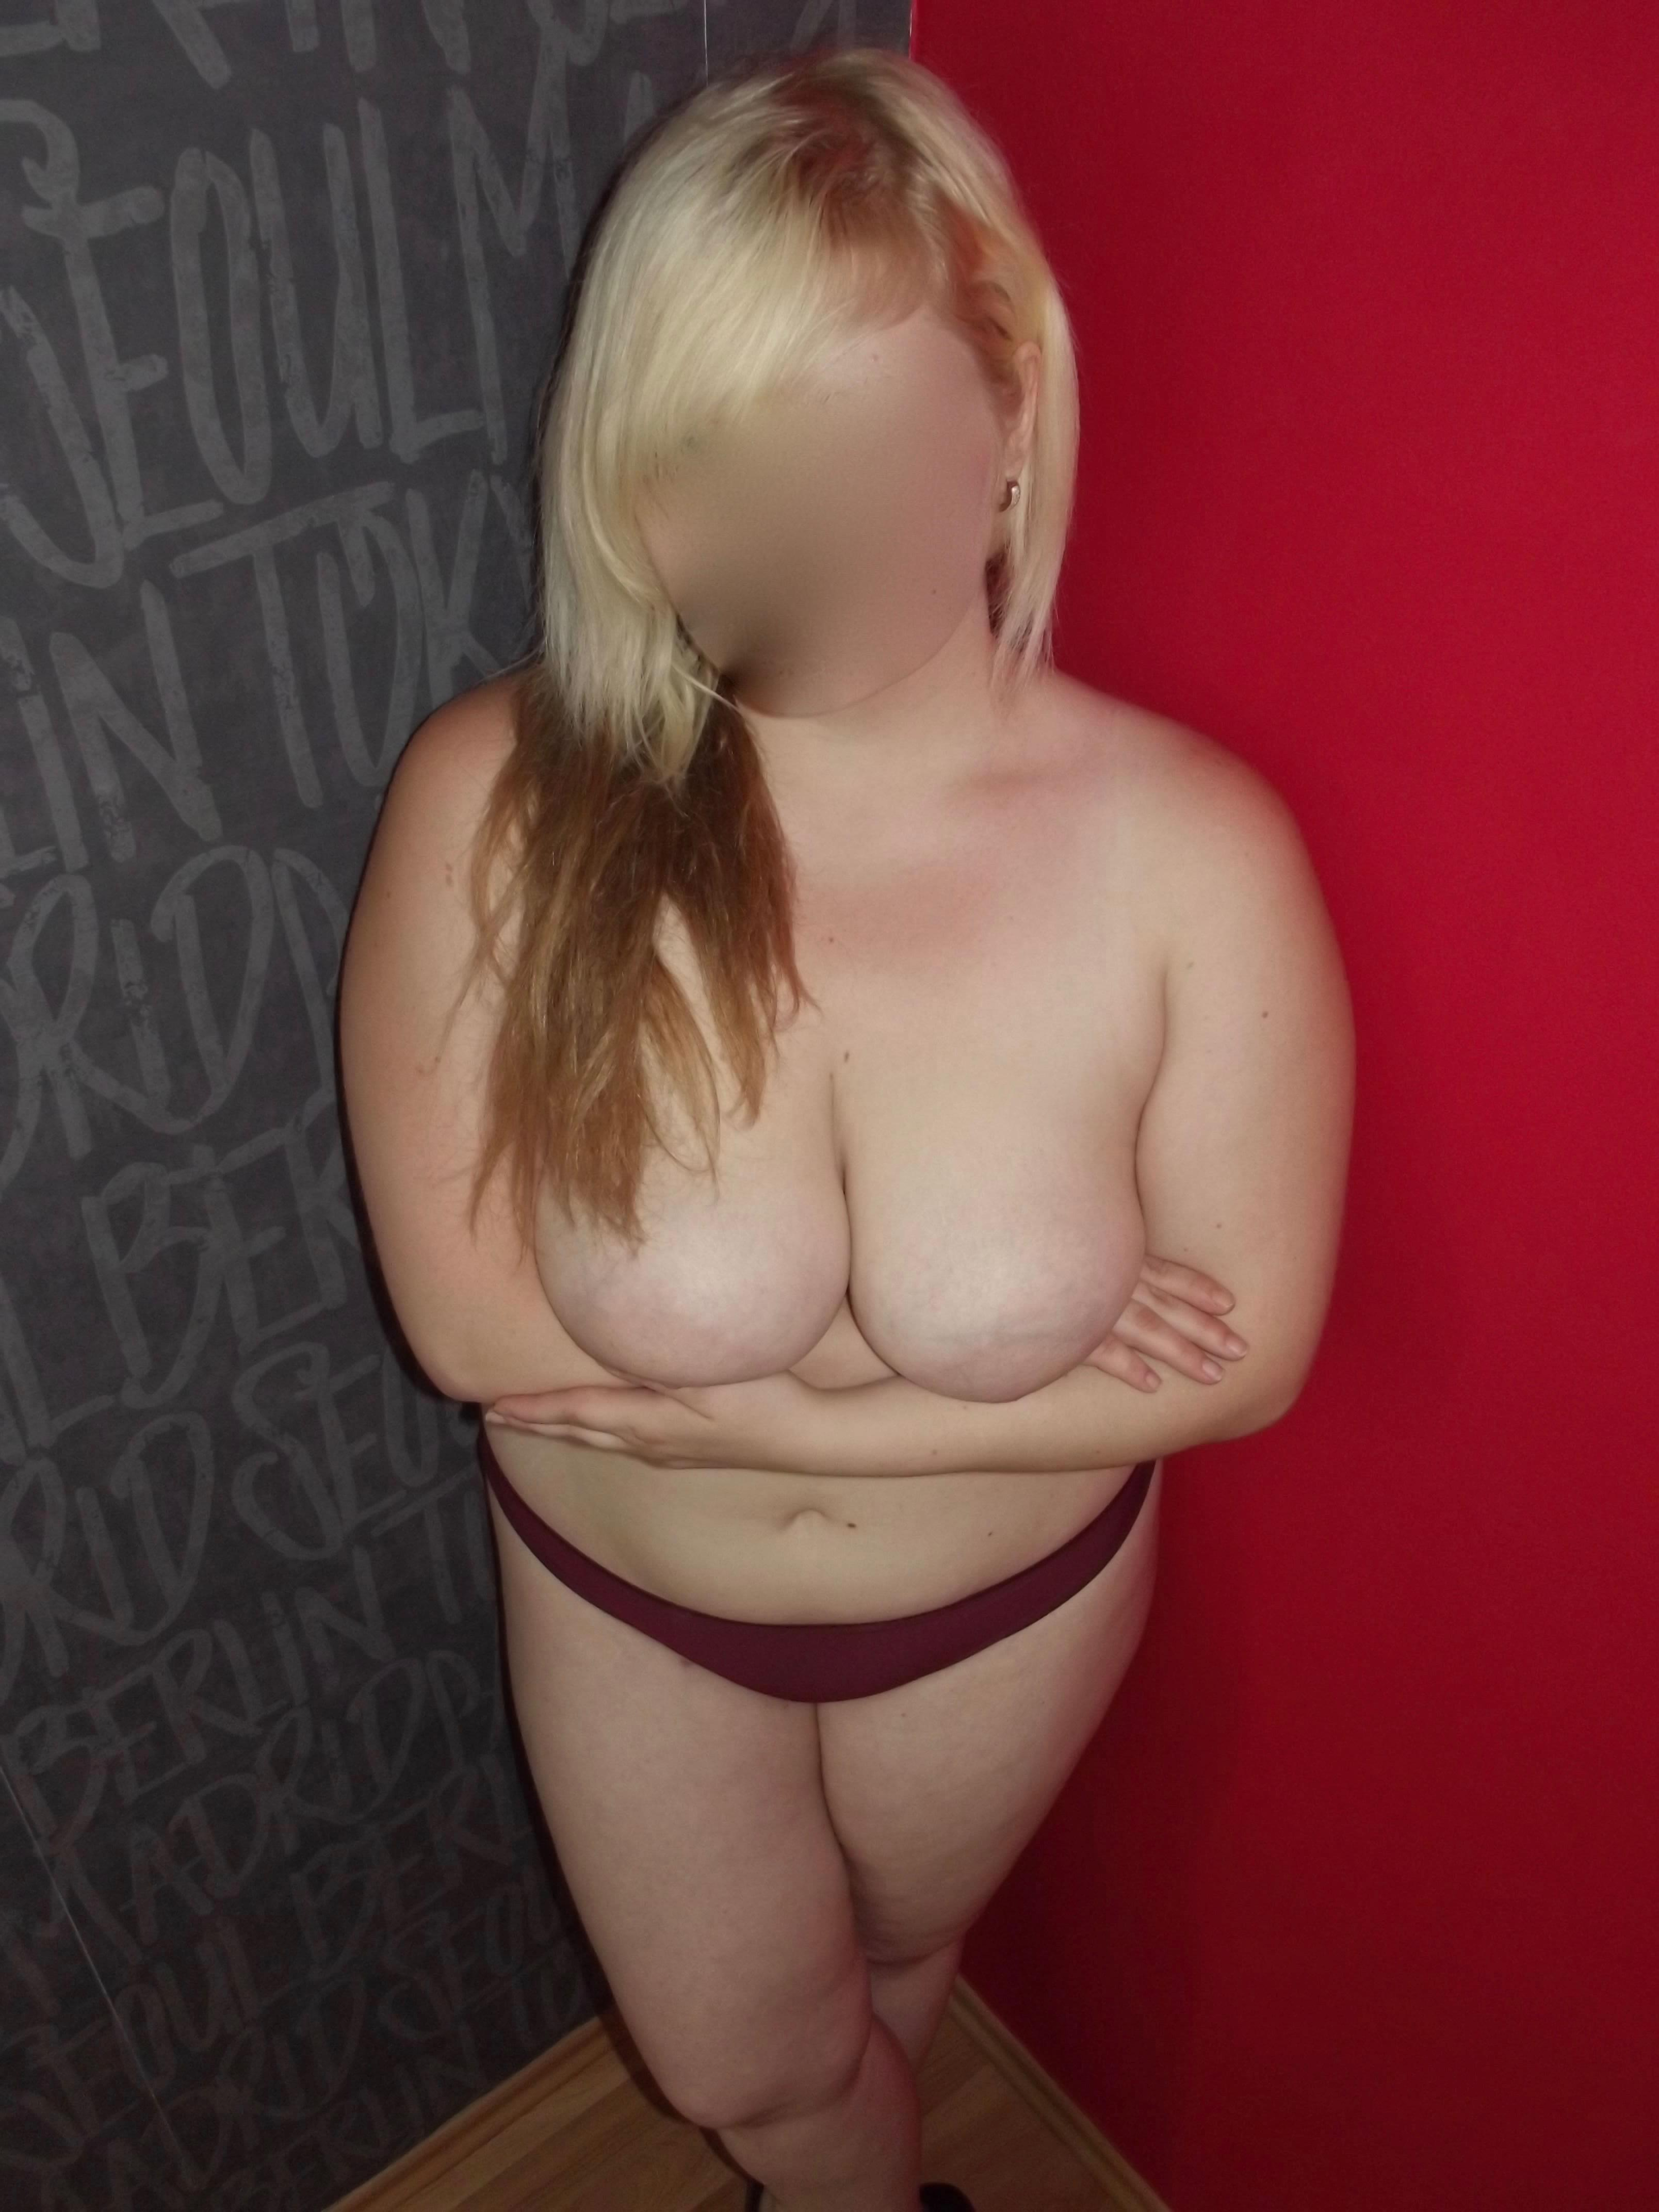 sexprivat privaty sex